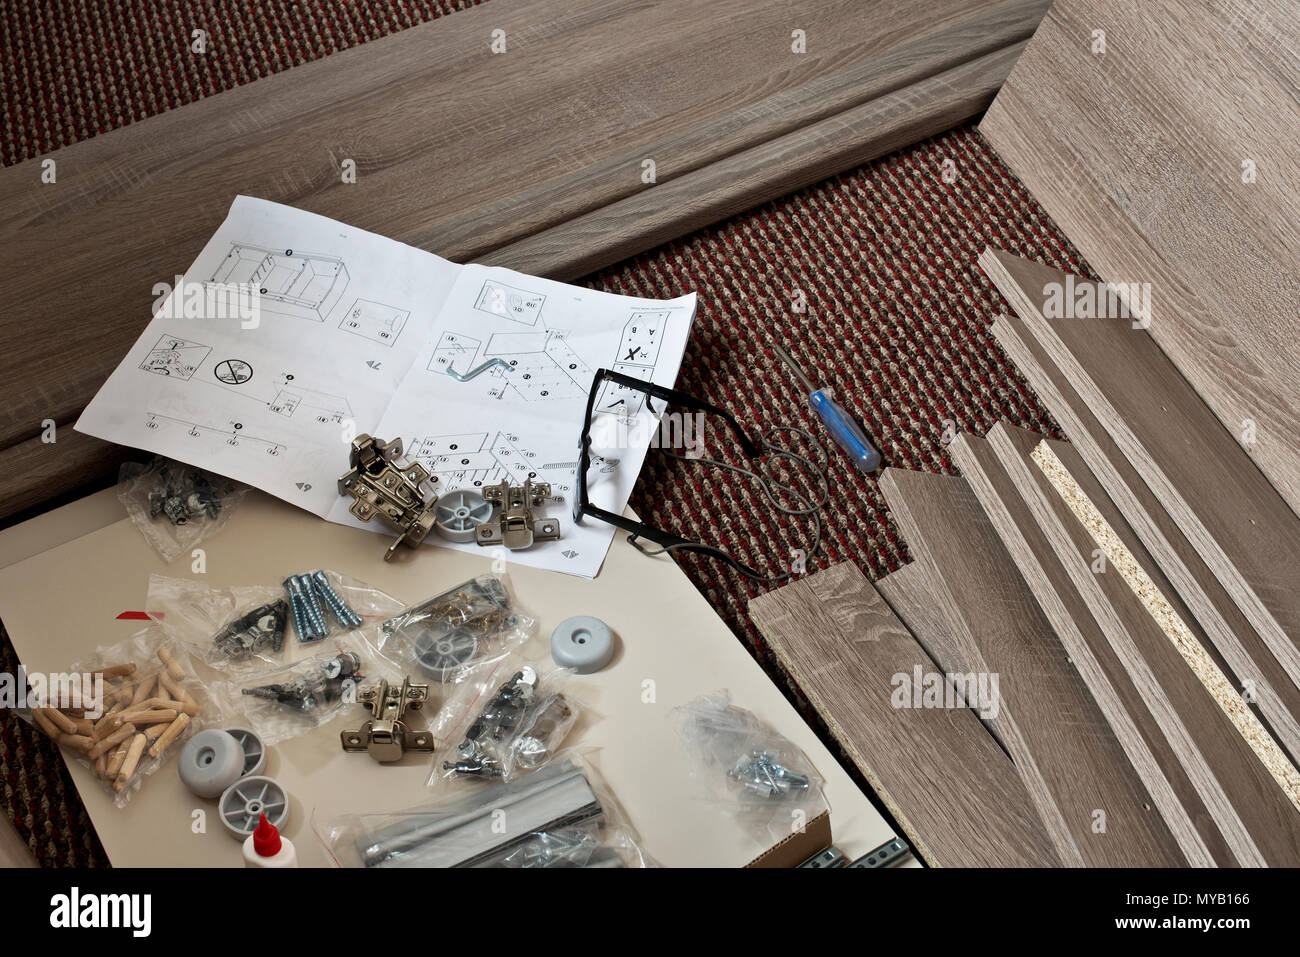 Preparation for New Furniture Installation on the Carpet. - Stock Image